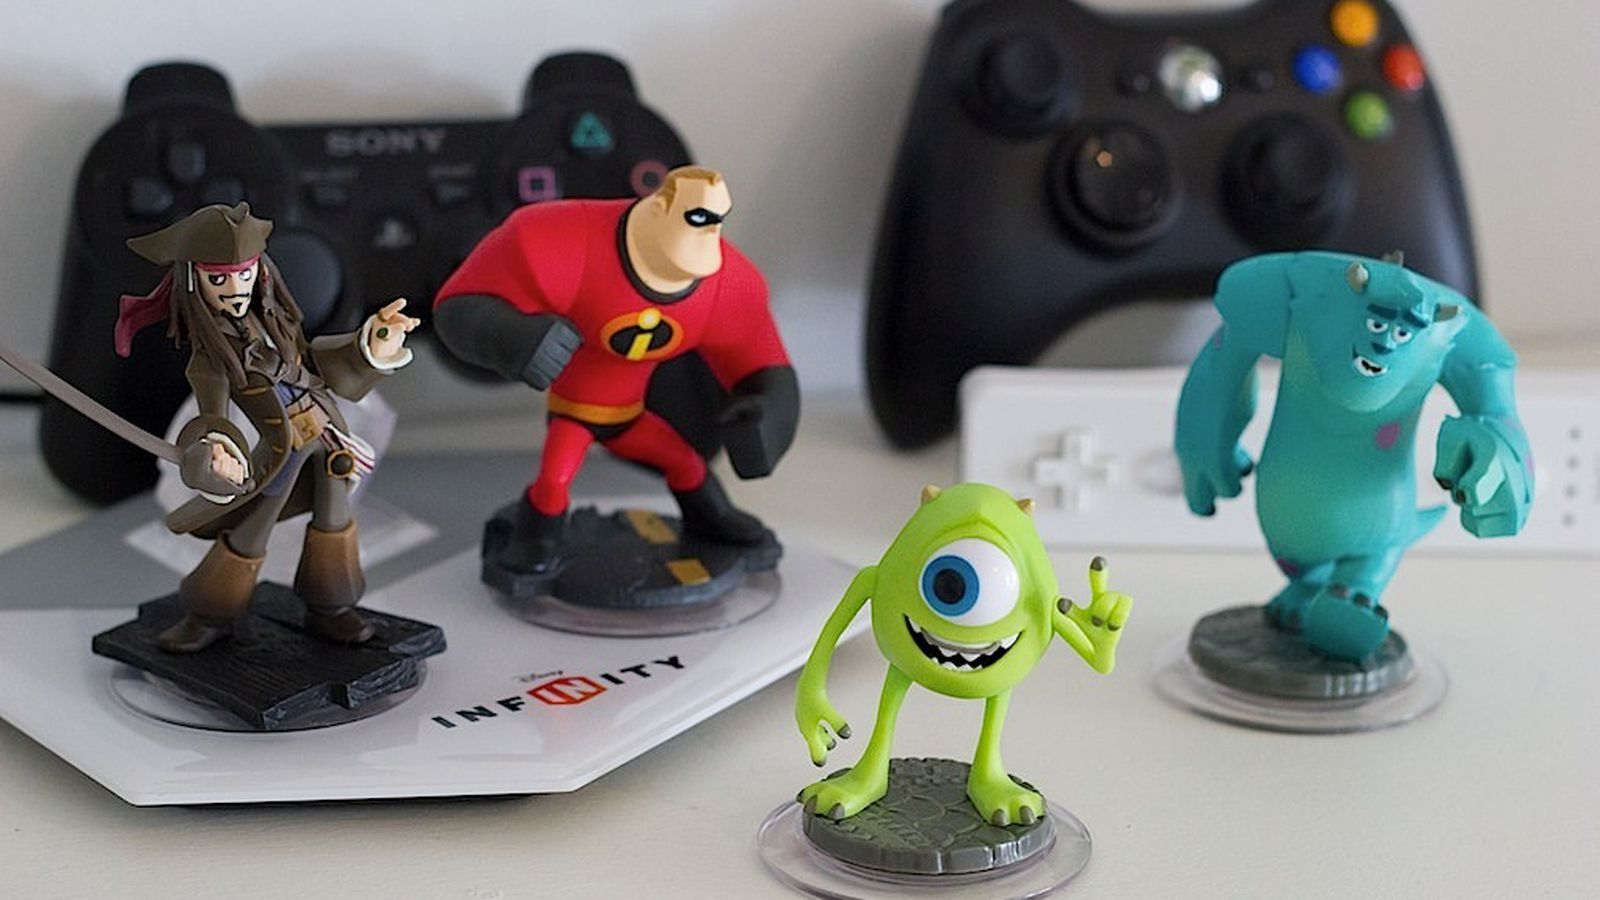 Disney Infinity Cars Review